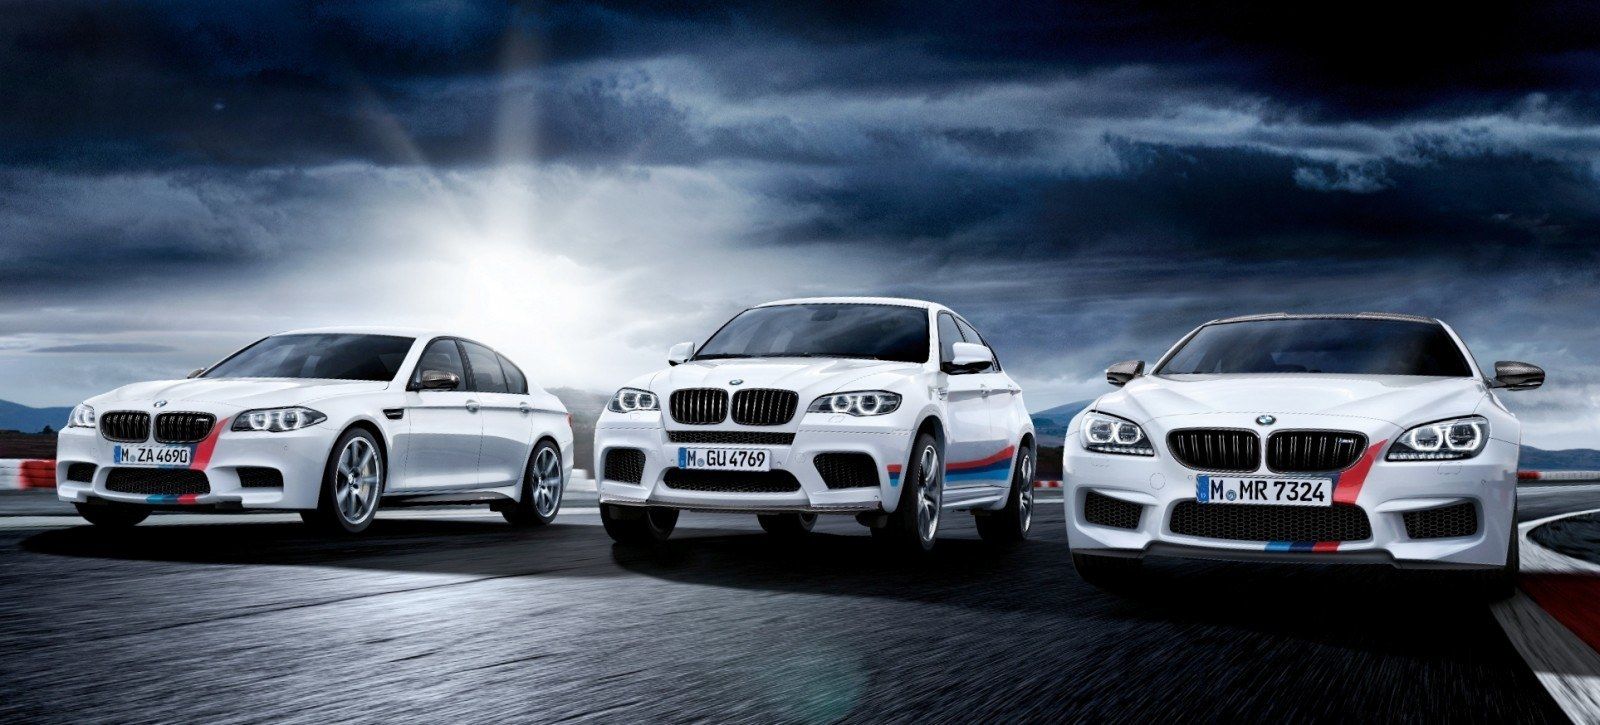 M Performance Catalog Offers Hundreds of Ways to Up the Drama and Road Presence of 335i, 535i, M3 and even the X5 and X6 74